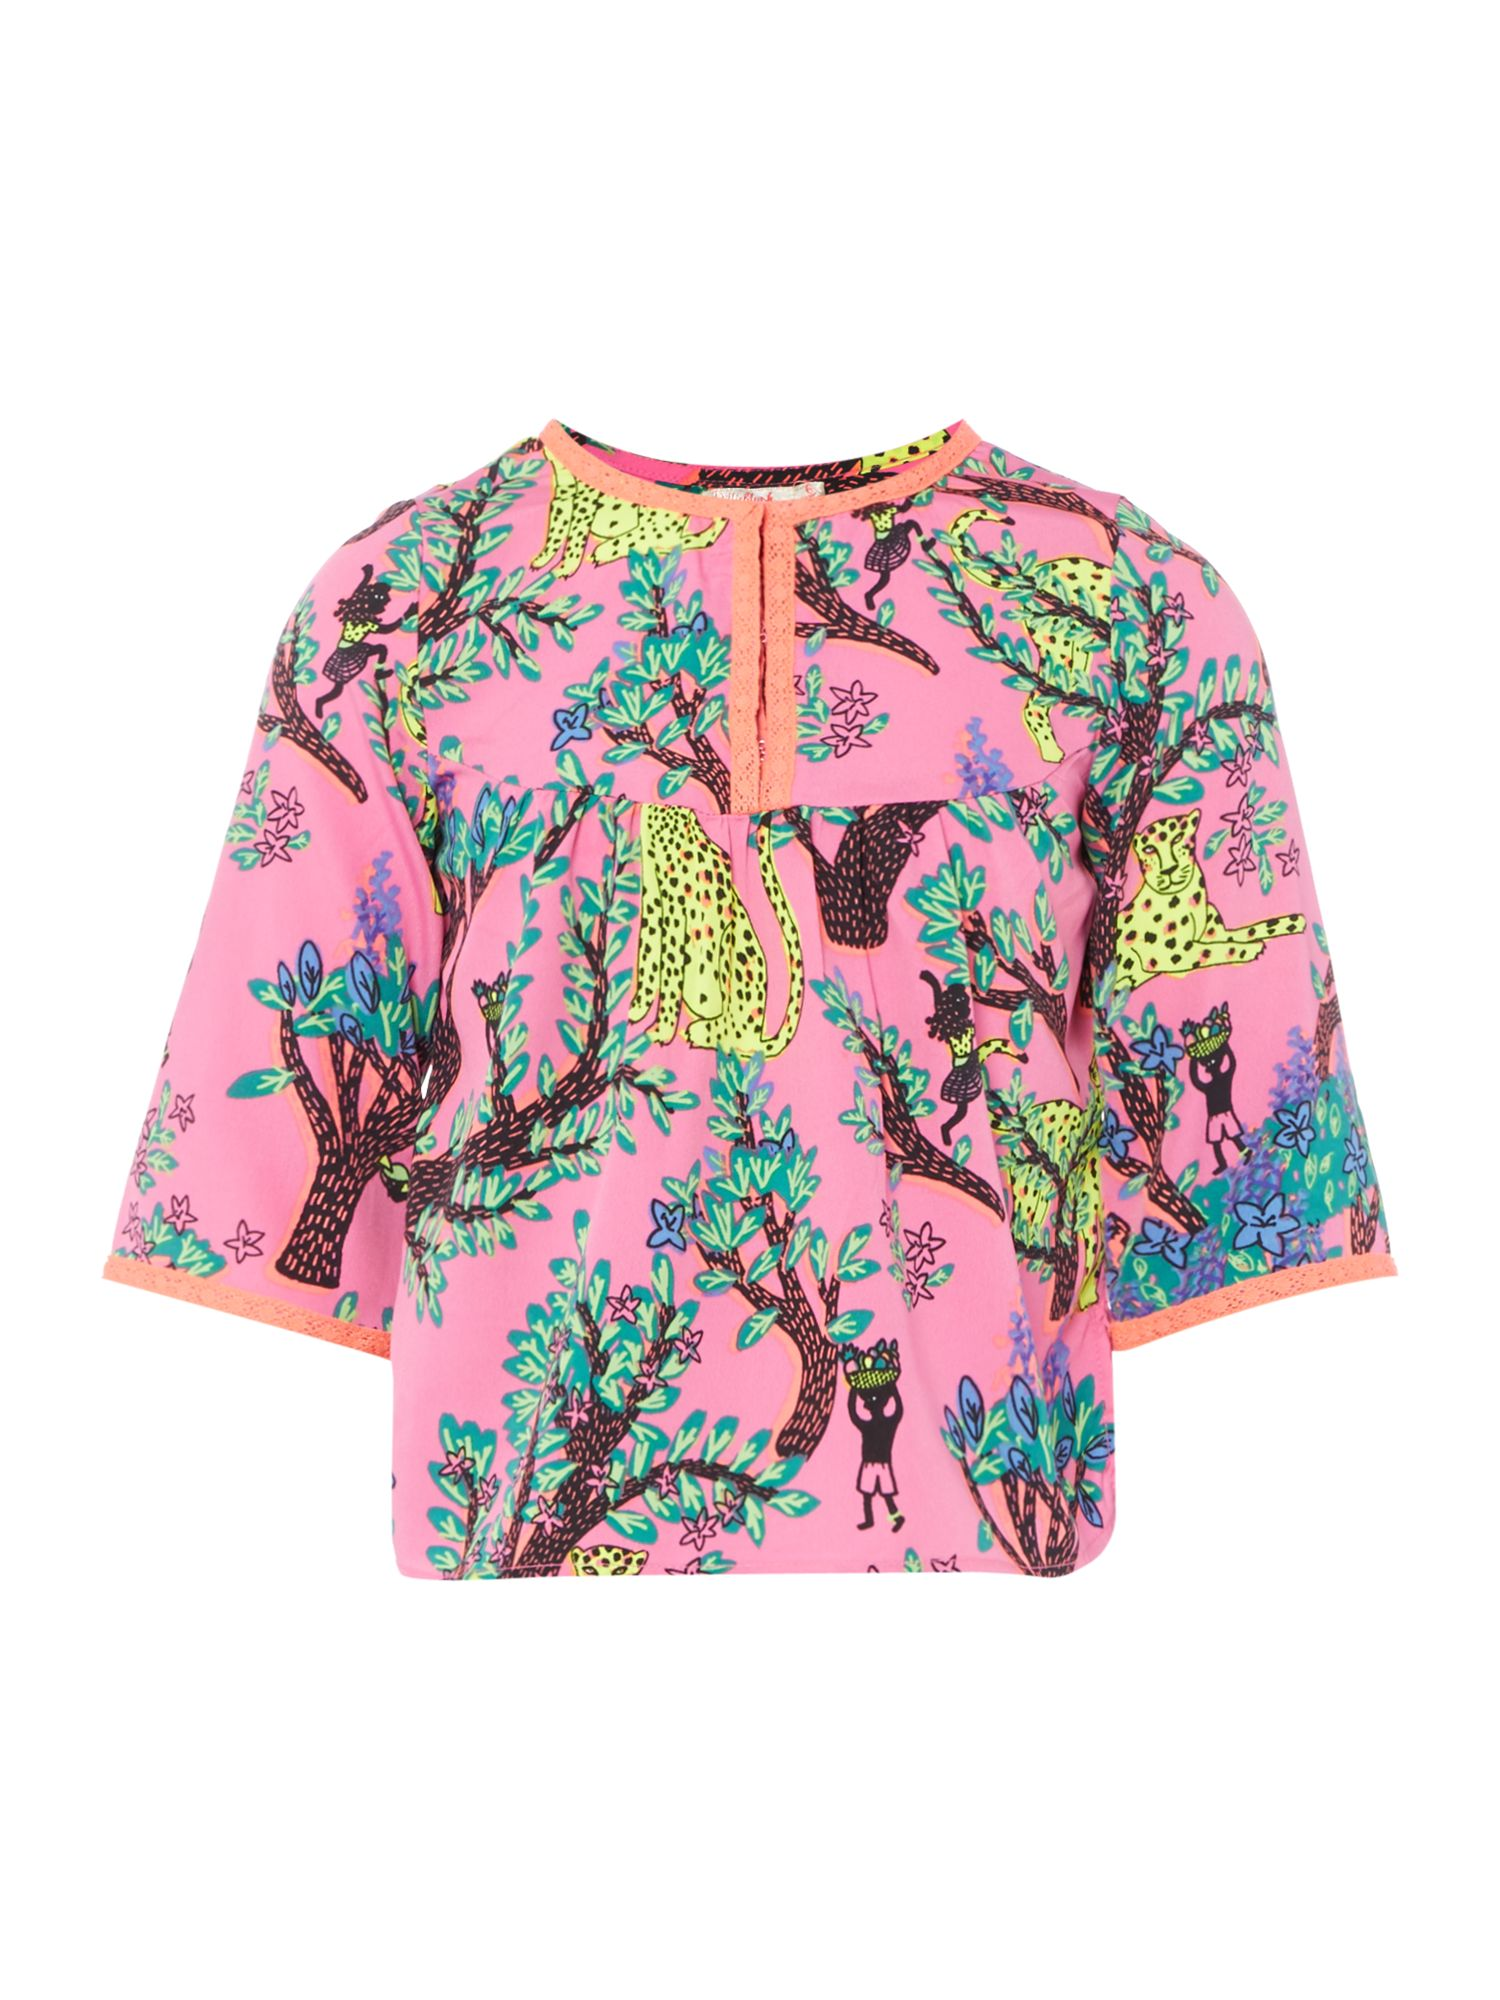 Billieblush Billieblush Girls Crepe Blouse, Multi-Coloured